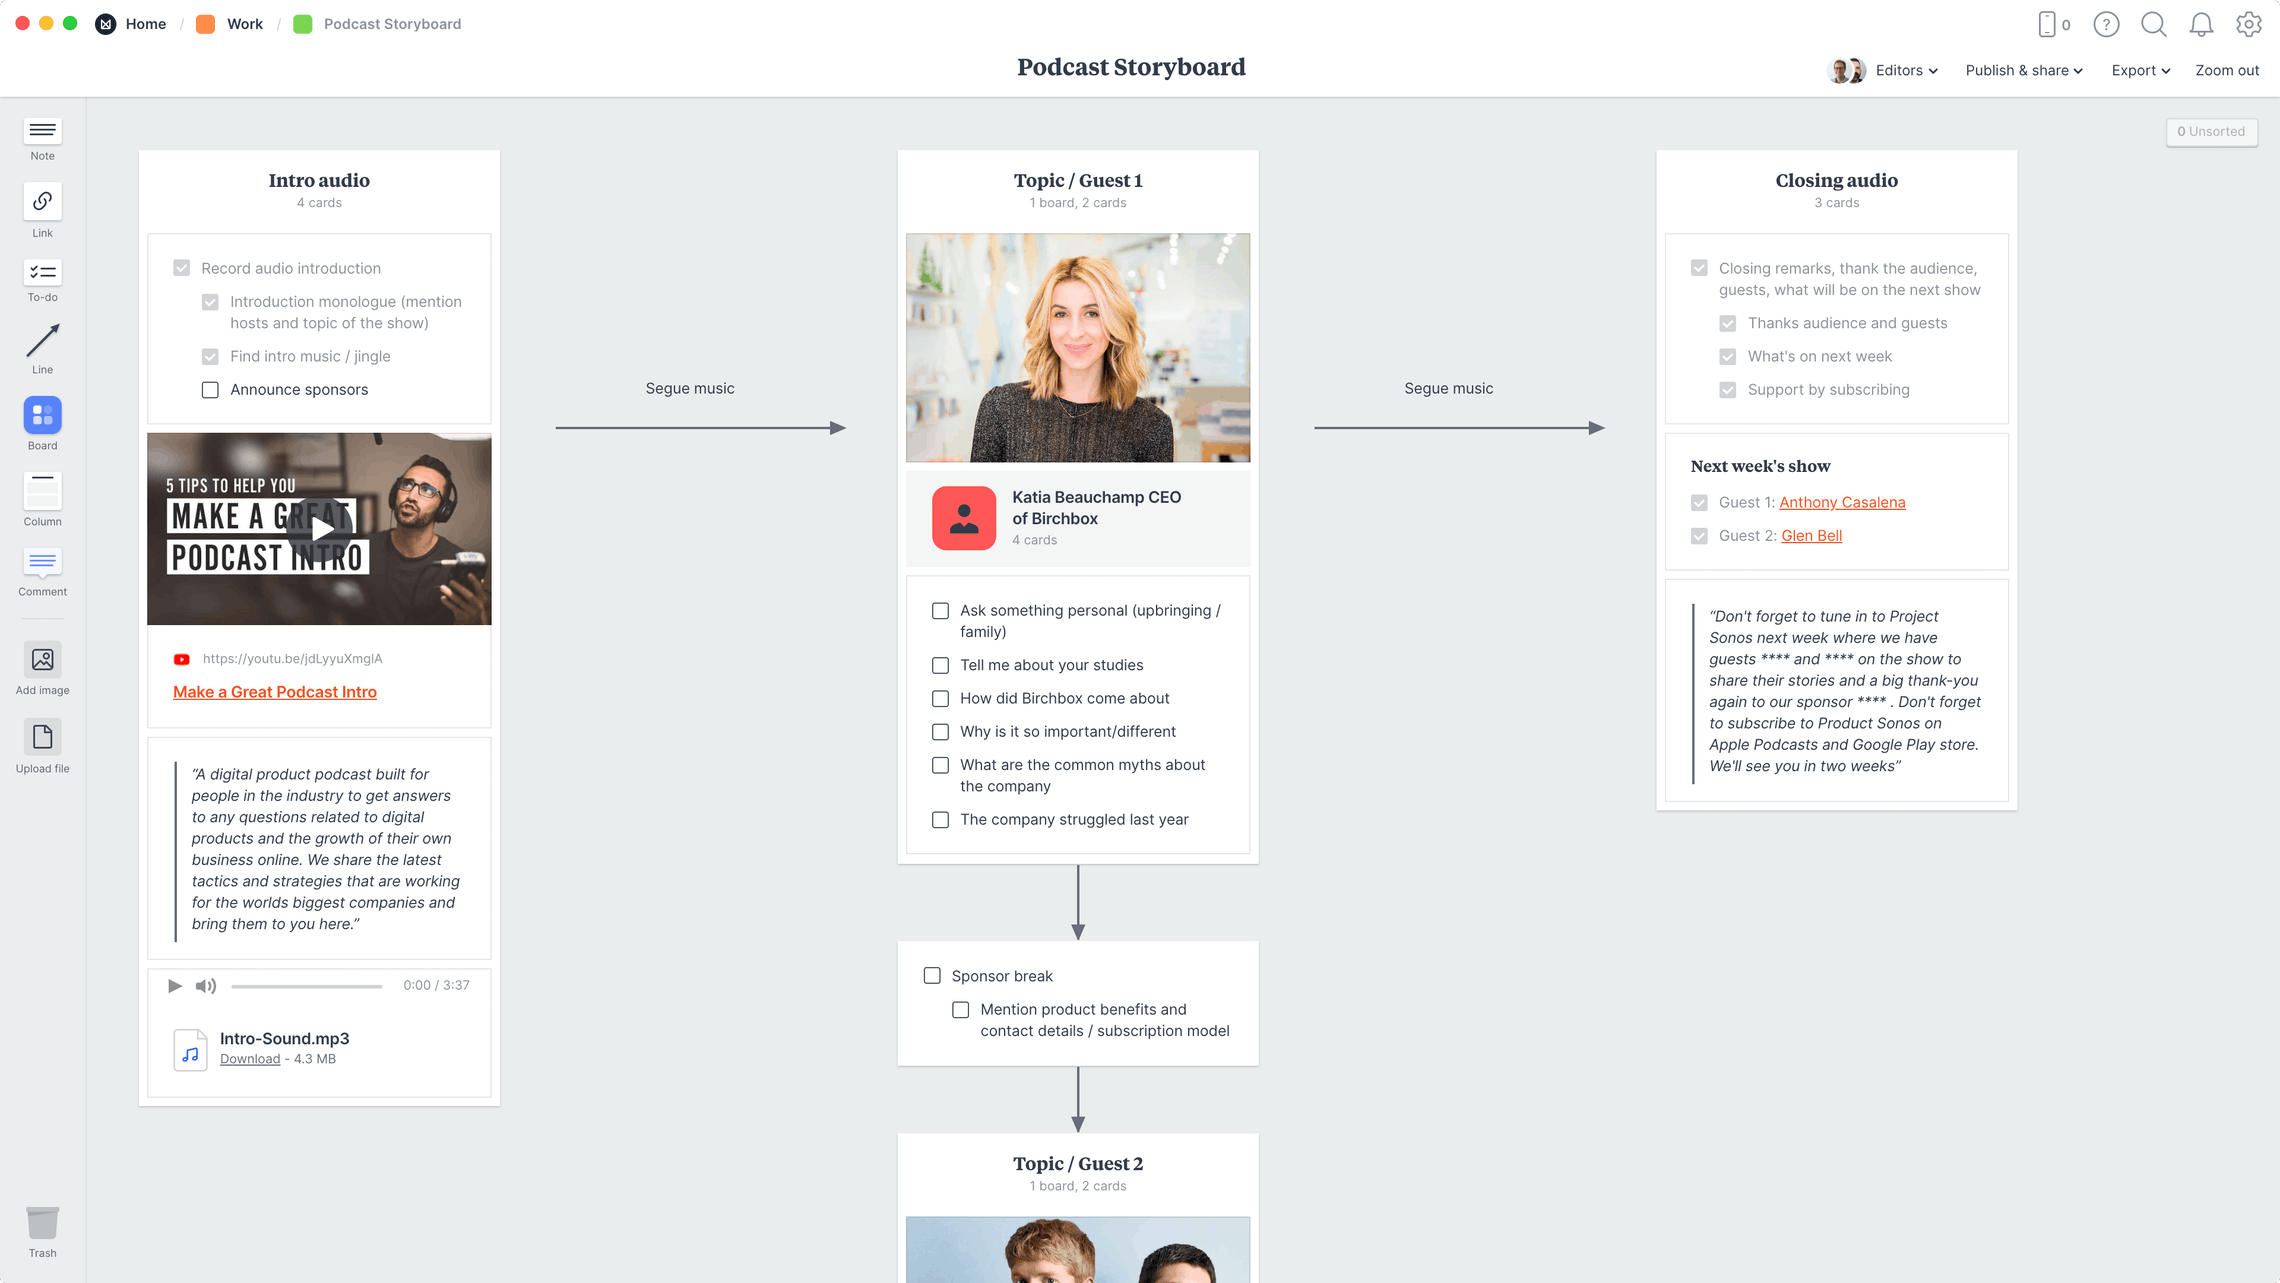 Podcast Storyboard Template, within the Milanote app